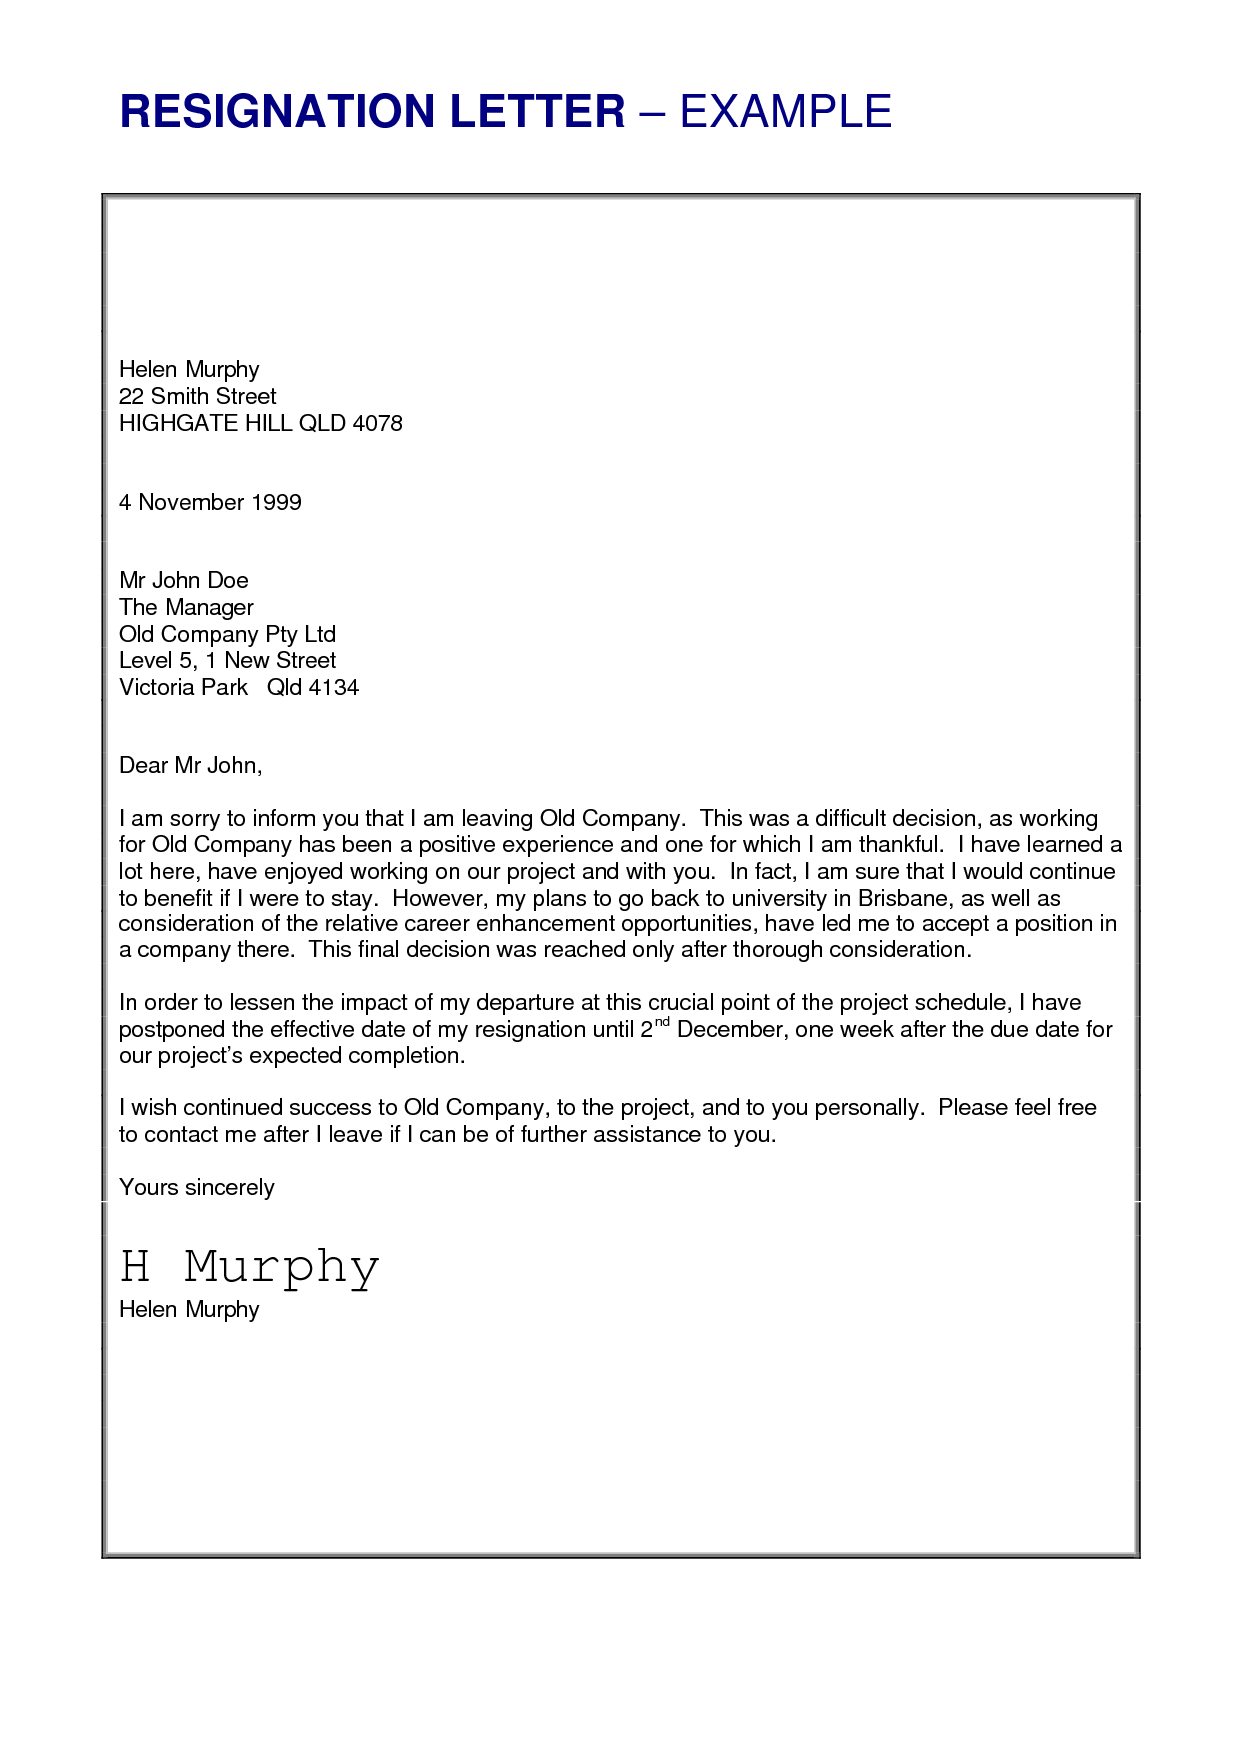 Superior Job Resignation Letter Sample   Loganun Blog